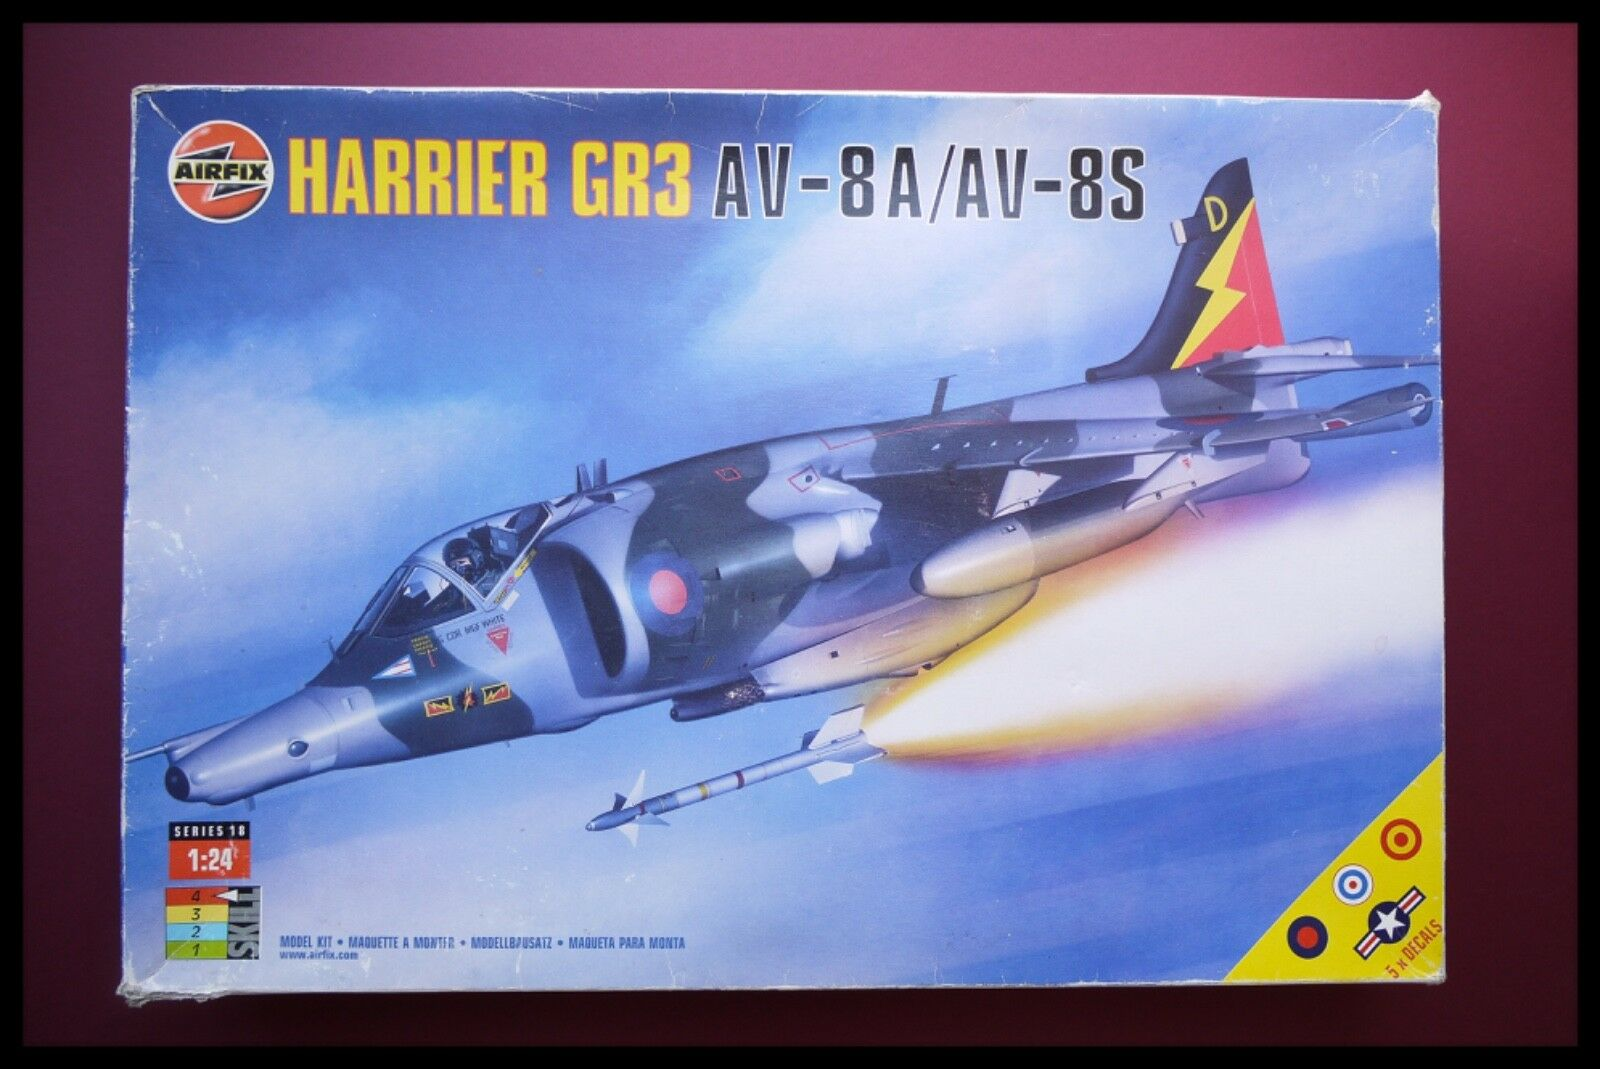 Airfix 1 24 Scale Harrier GR3 AV-8A   AV-8S 18003